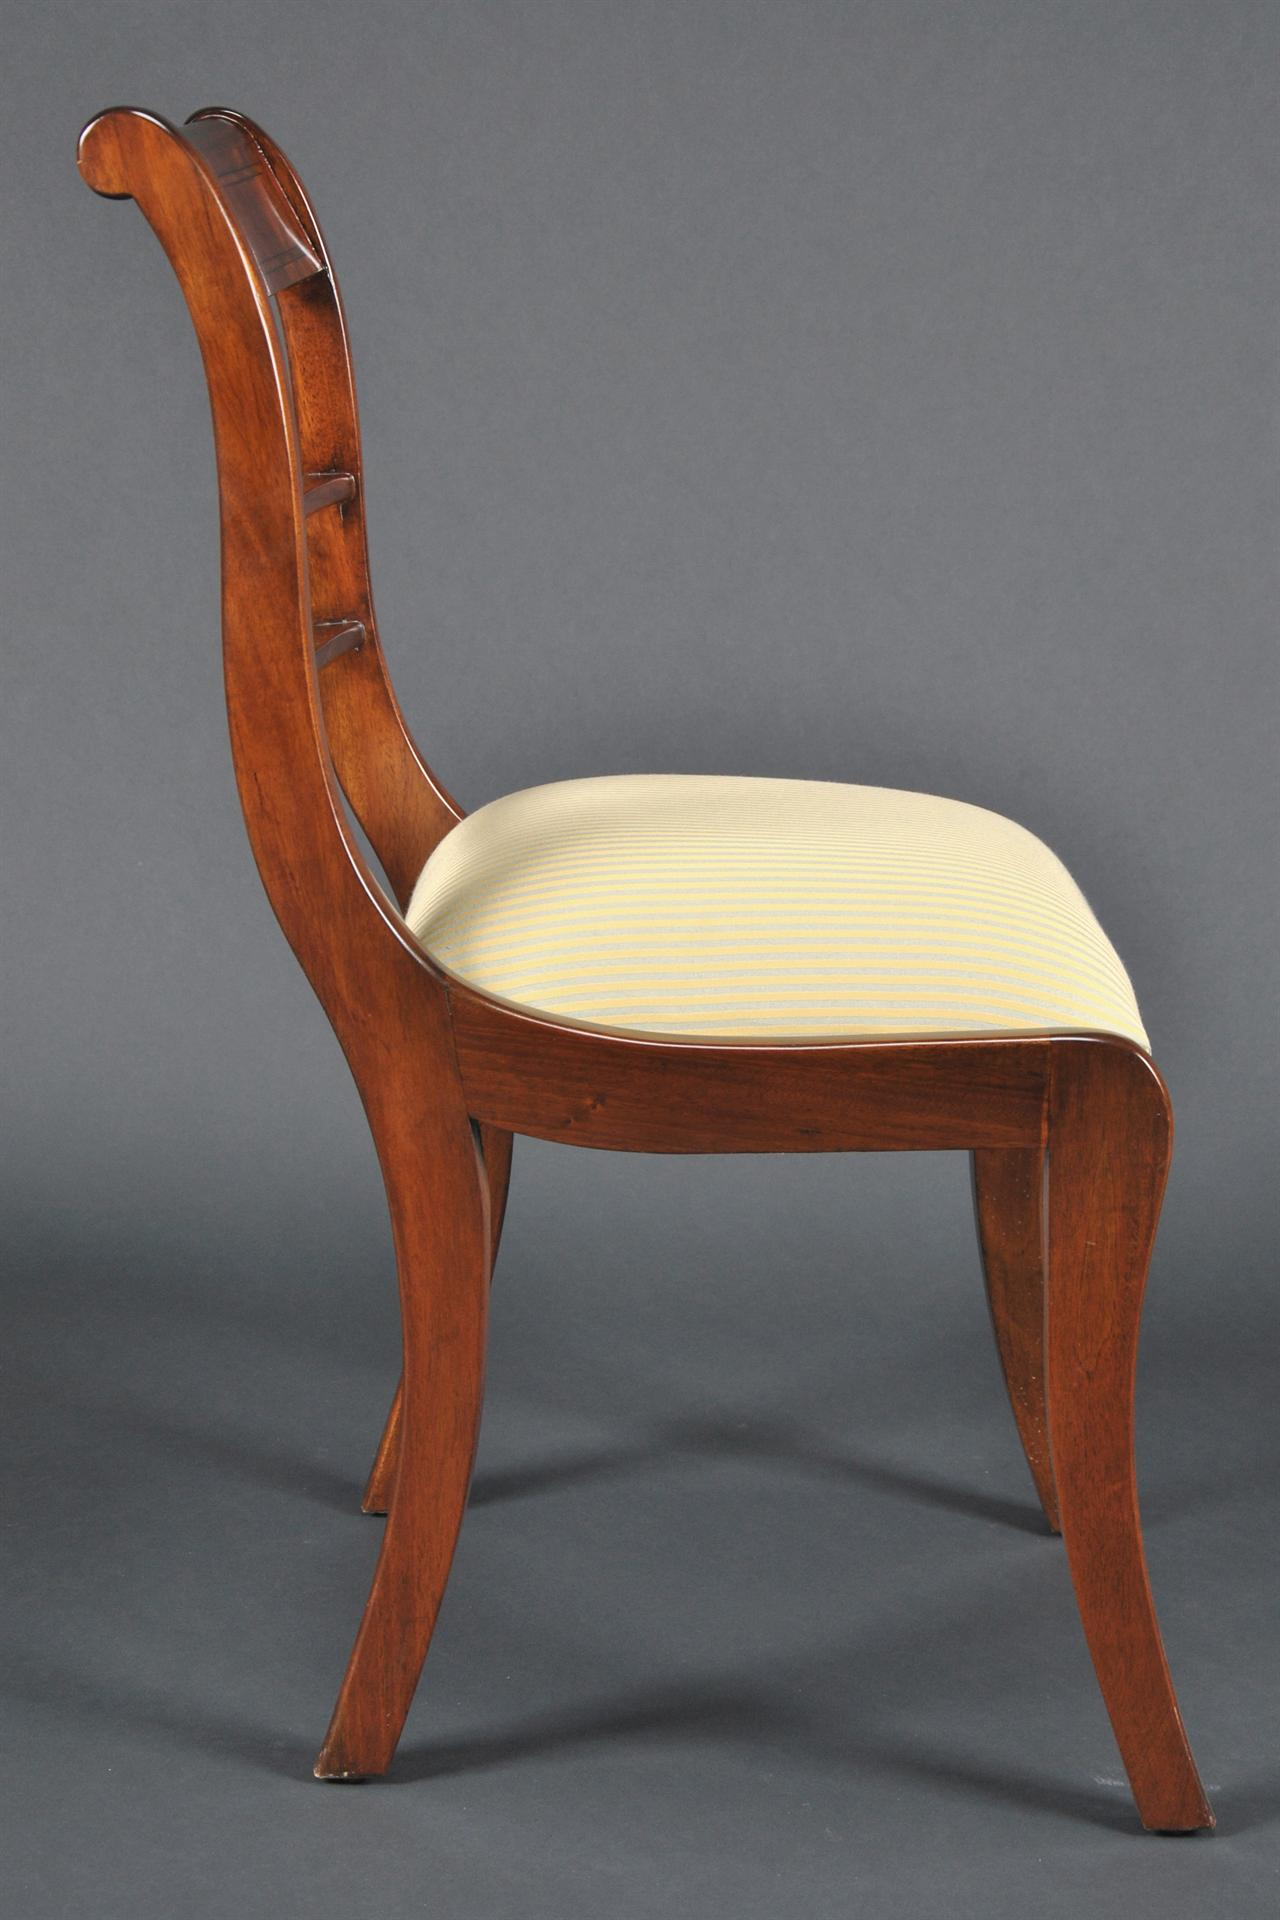 duncan phyfe chairs chair covers target australia bing images